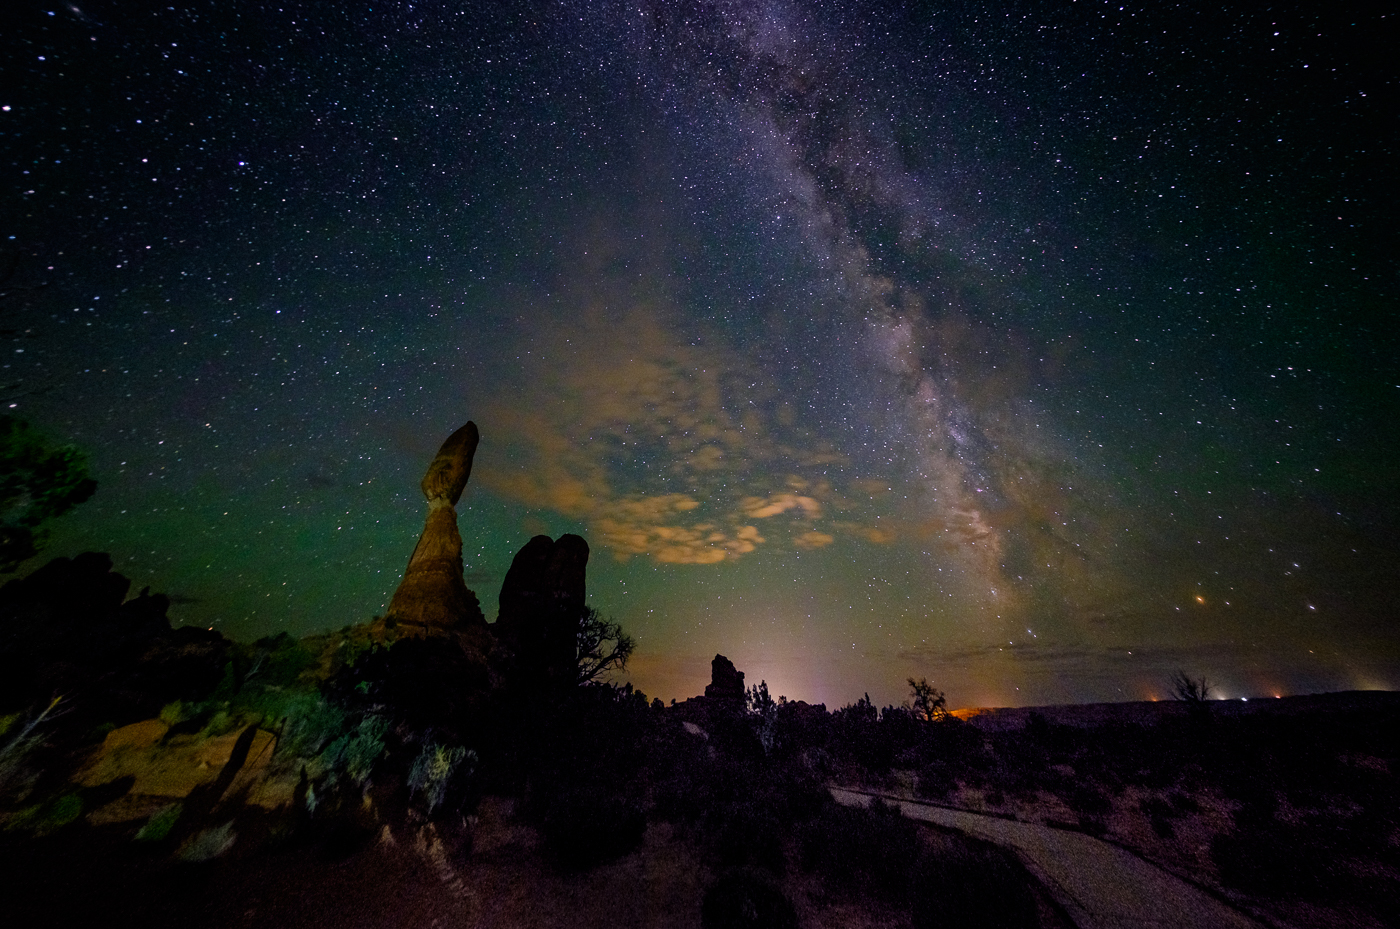 The Milky Way at Balanced Rock, Arches National Park, Utah, USA on northtosouth.us